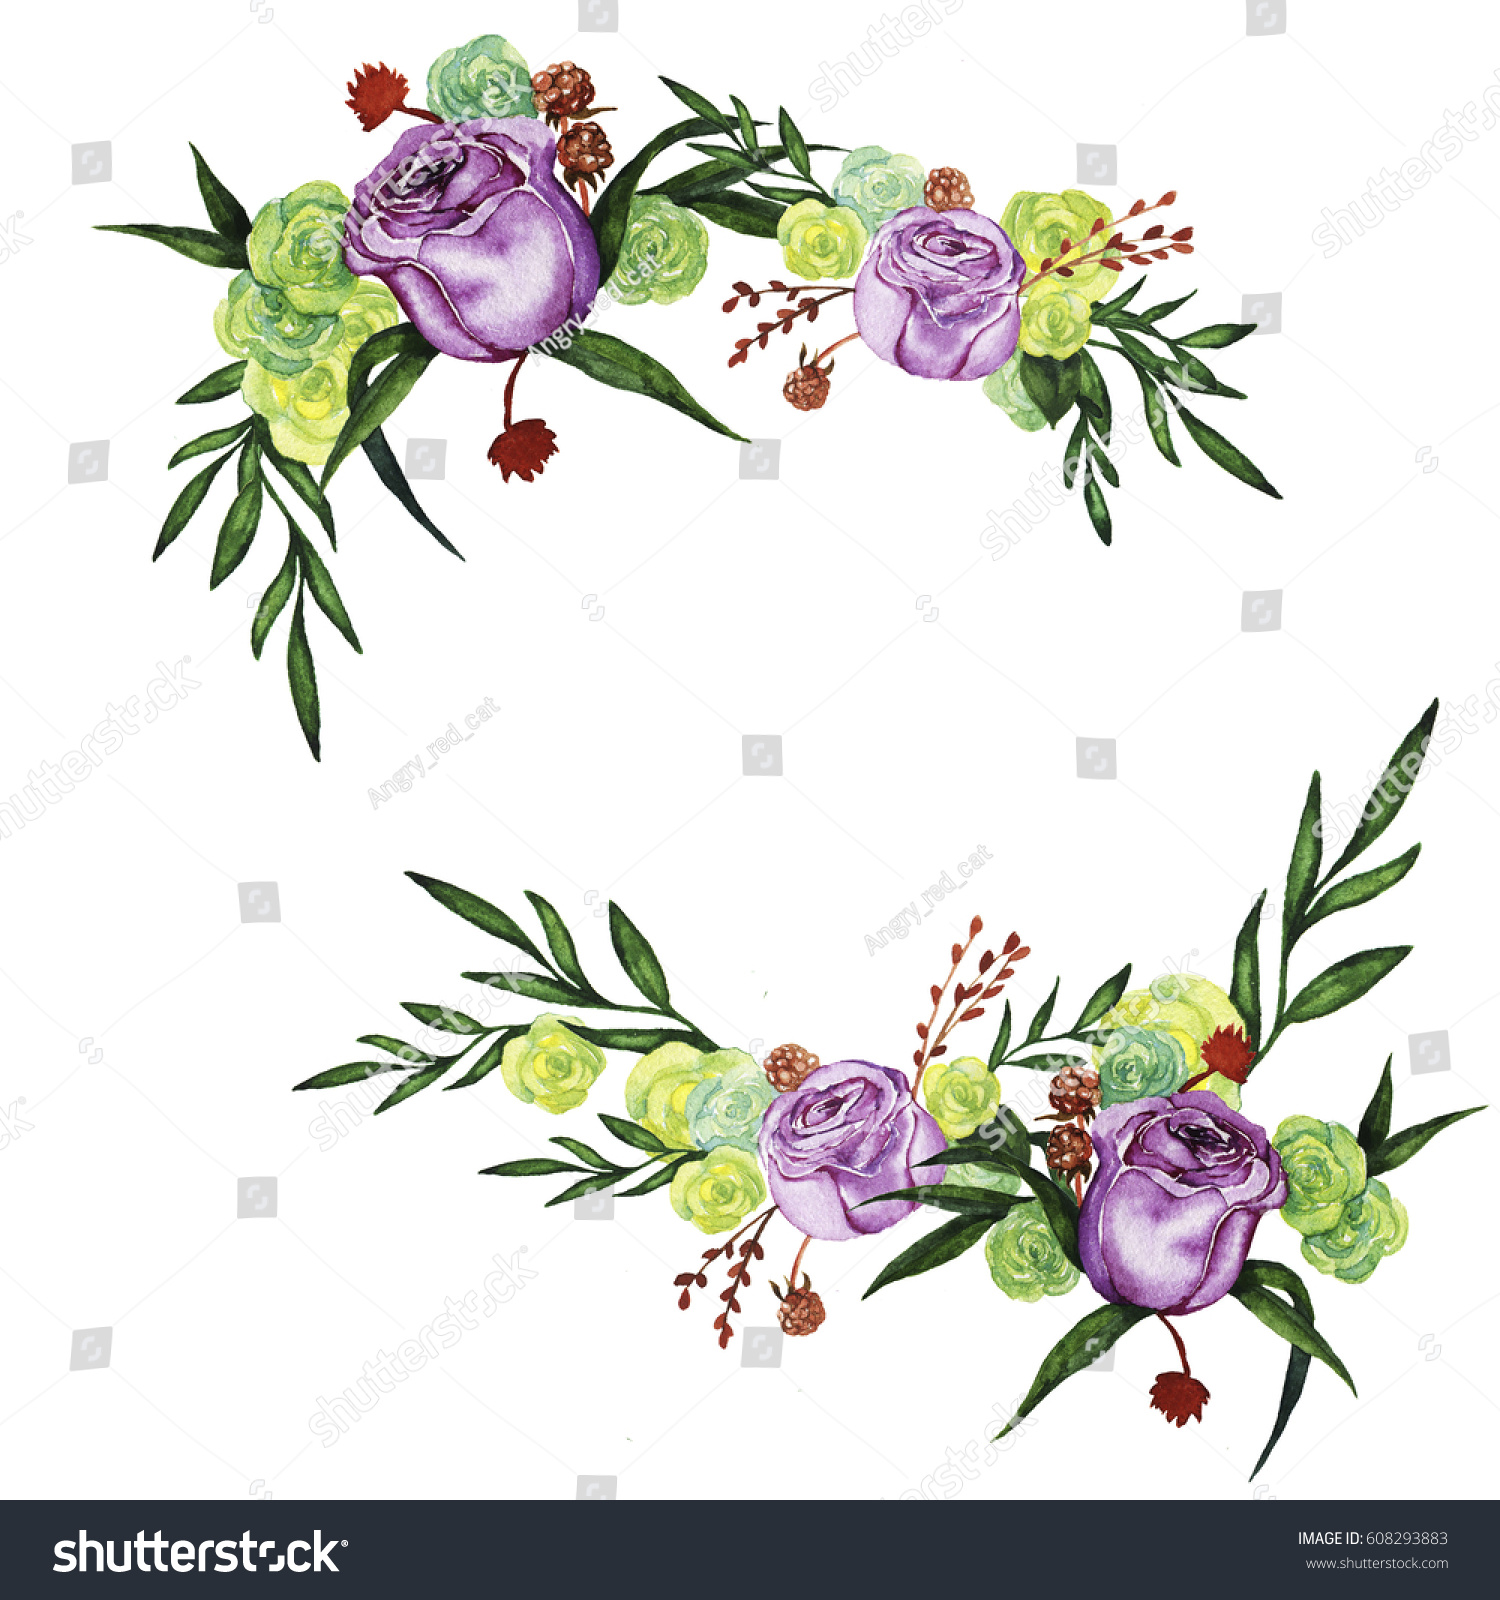 Lilac And Yellow Roses With Green Leaves And Dry Flowers Composition